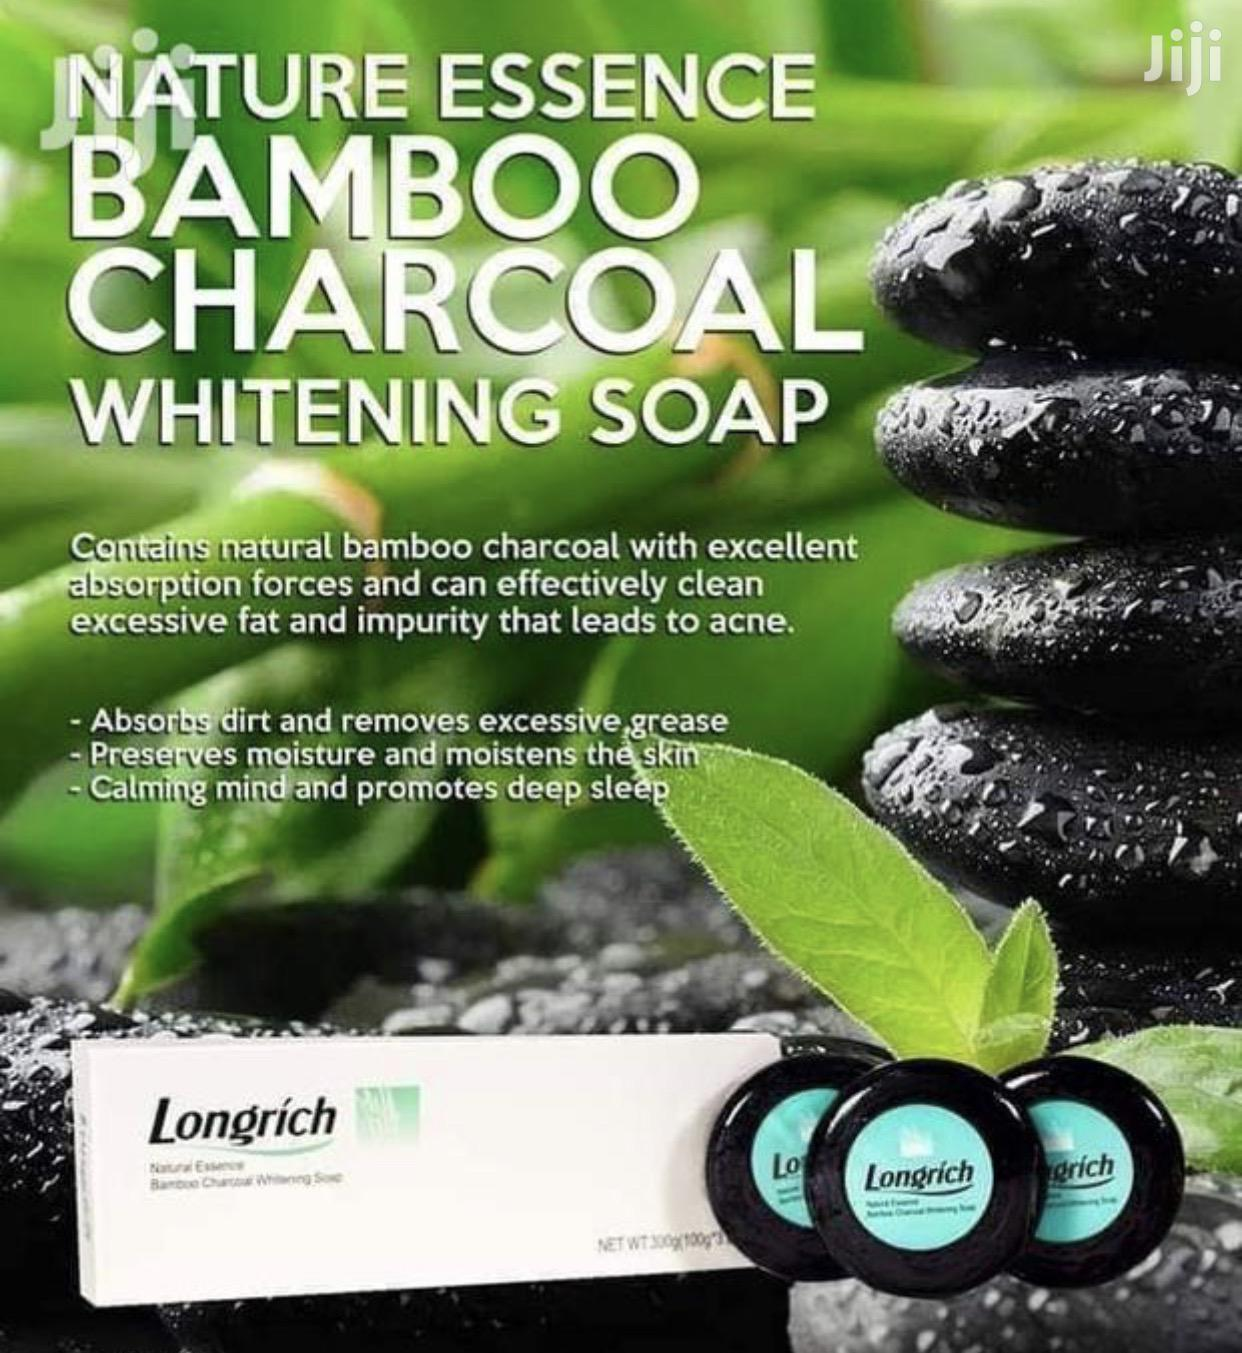 Longrich Natural Essence Bamboo Soap